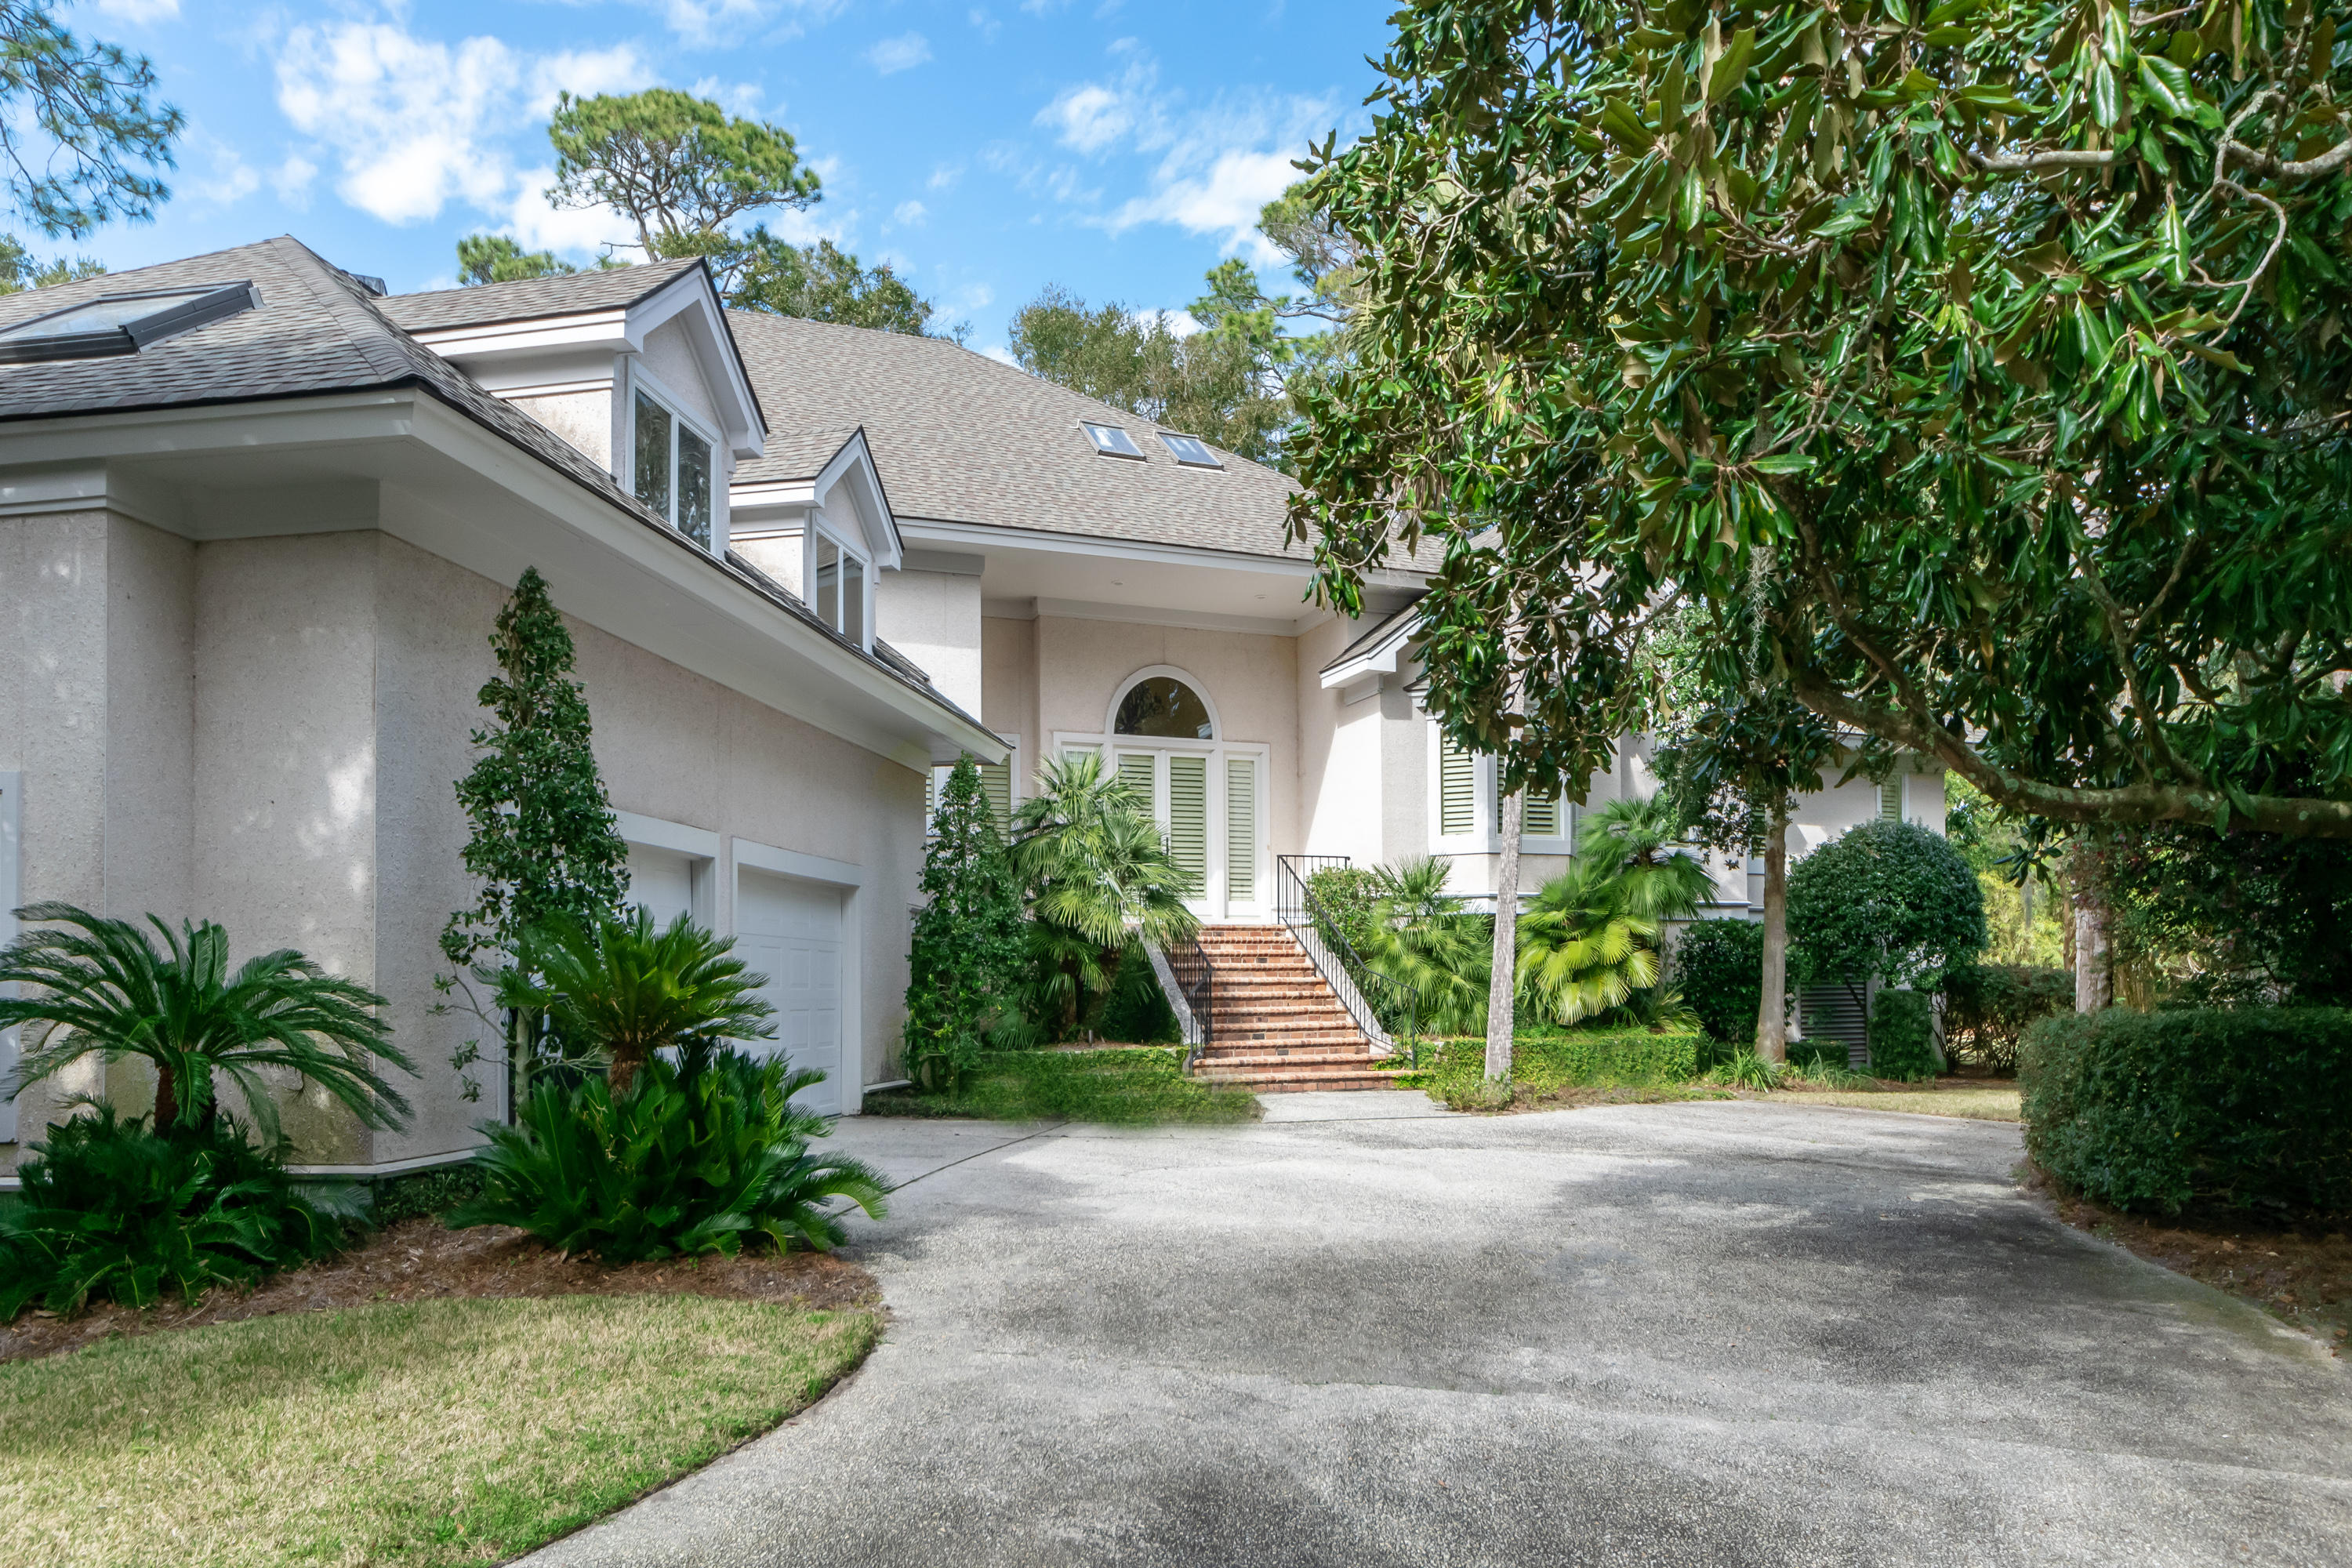 Photo of 7 Avocet Ln, Johns Island, SC 29455